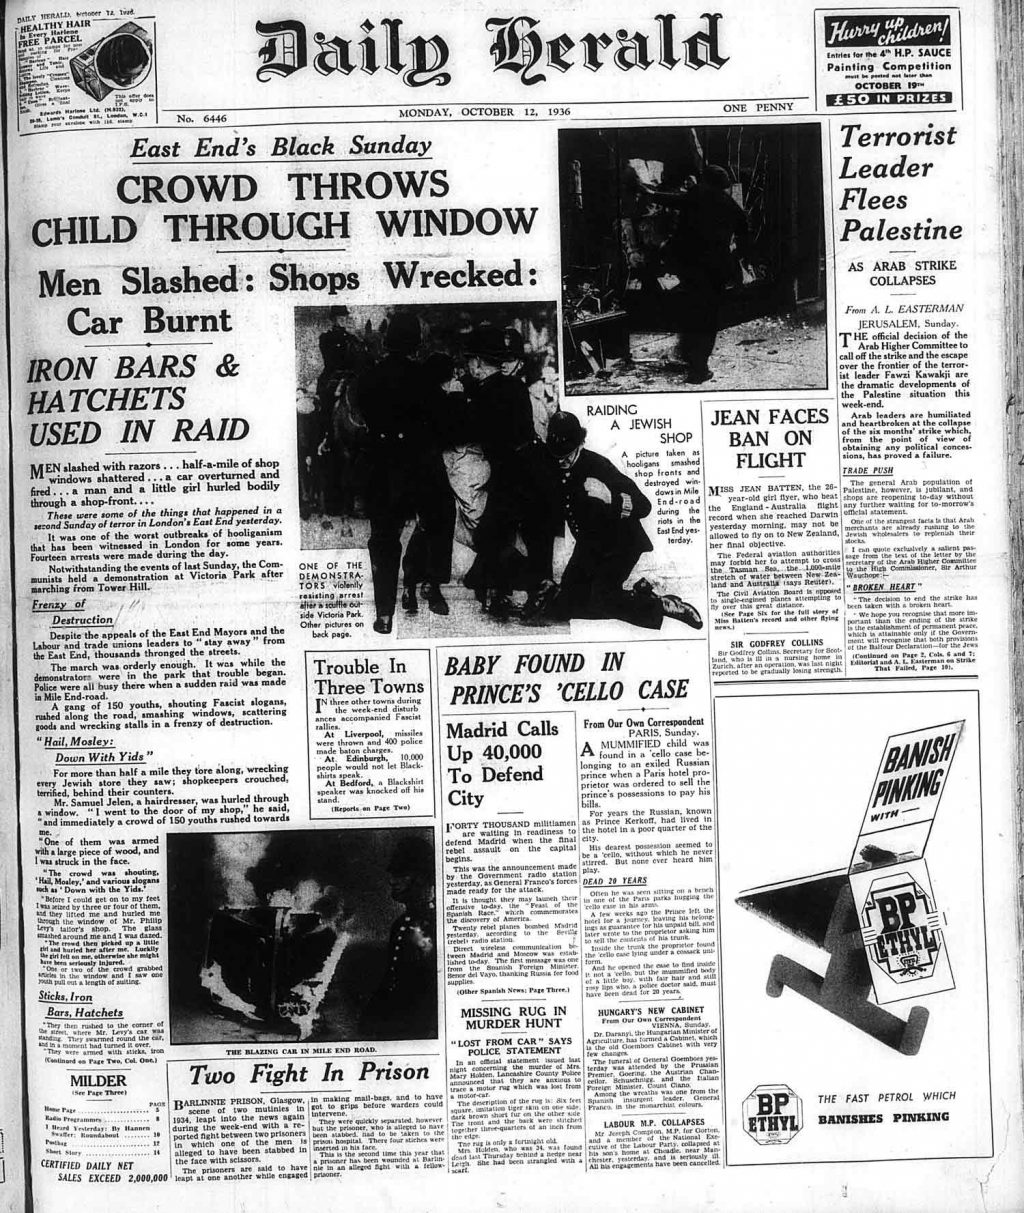 Daily Herald front page covering East End's black Sunday